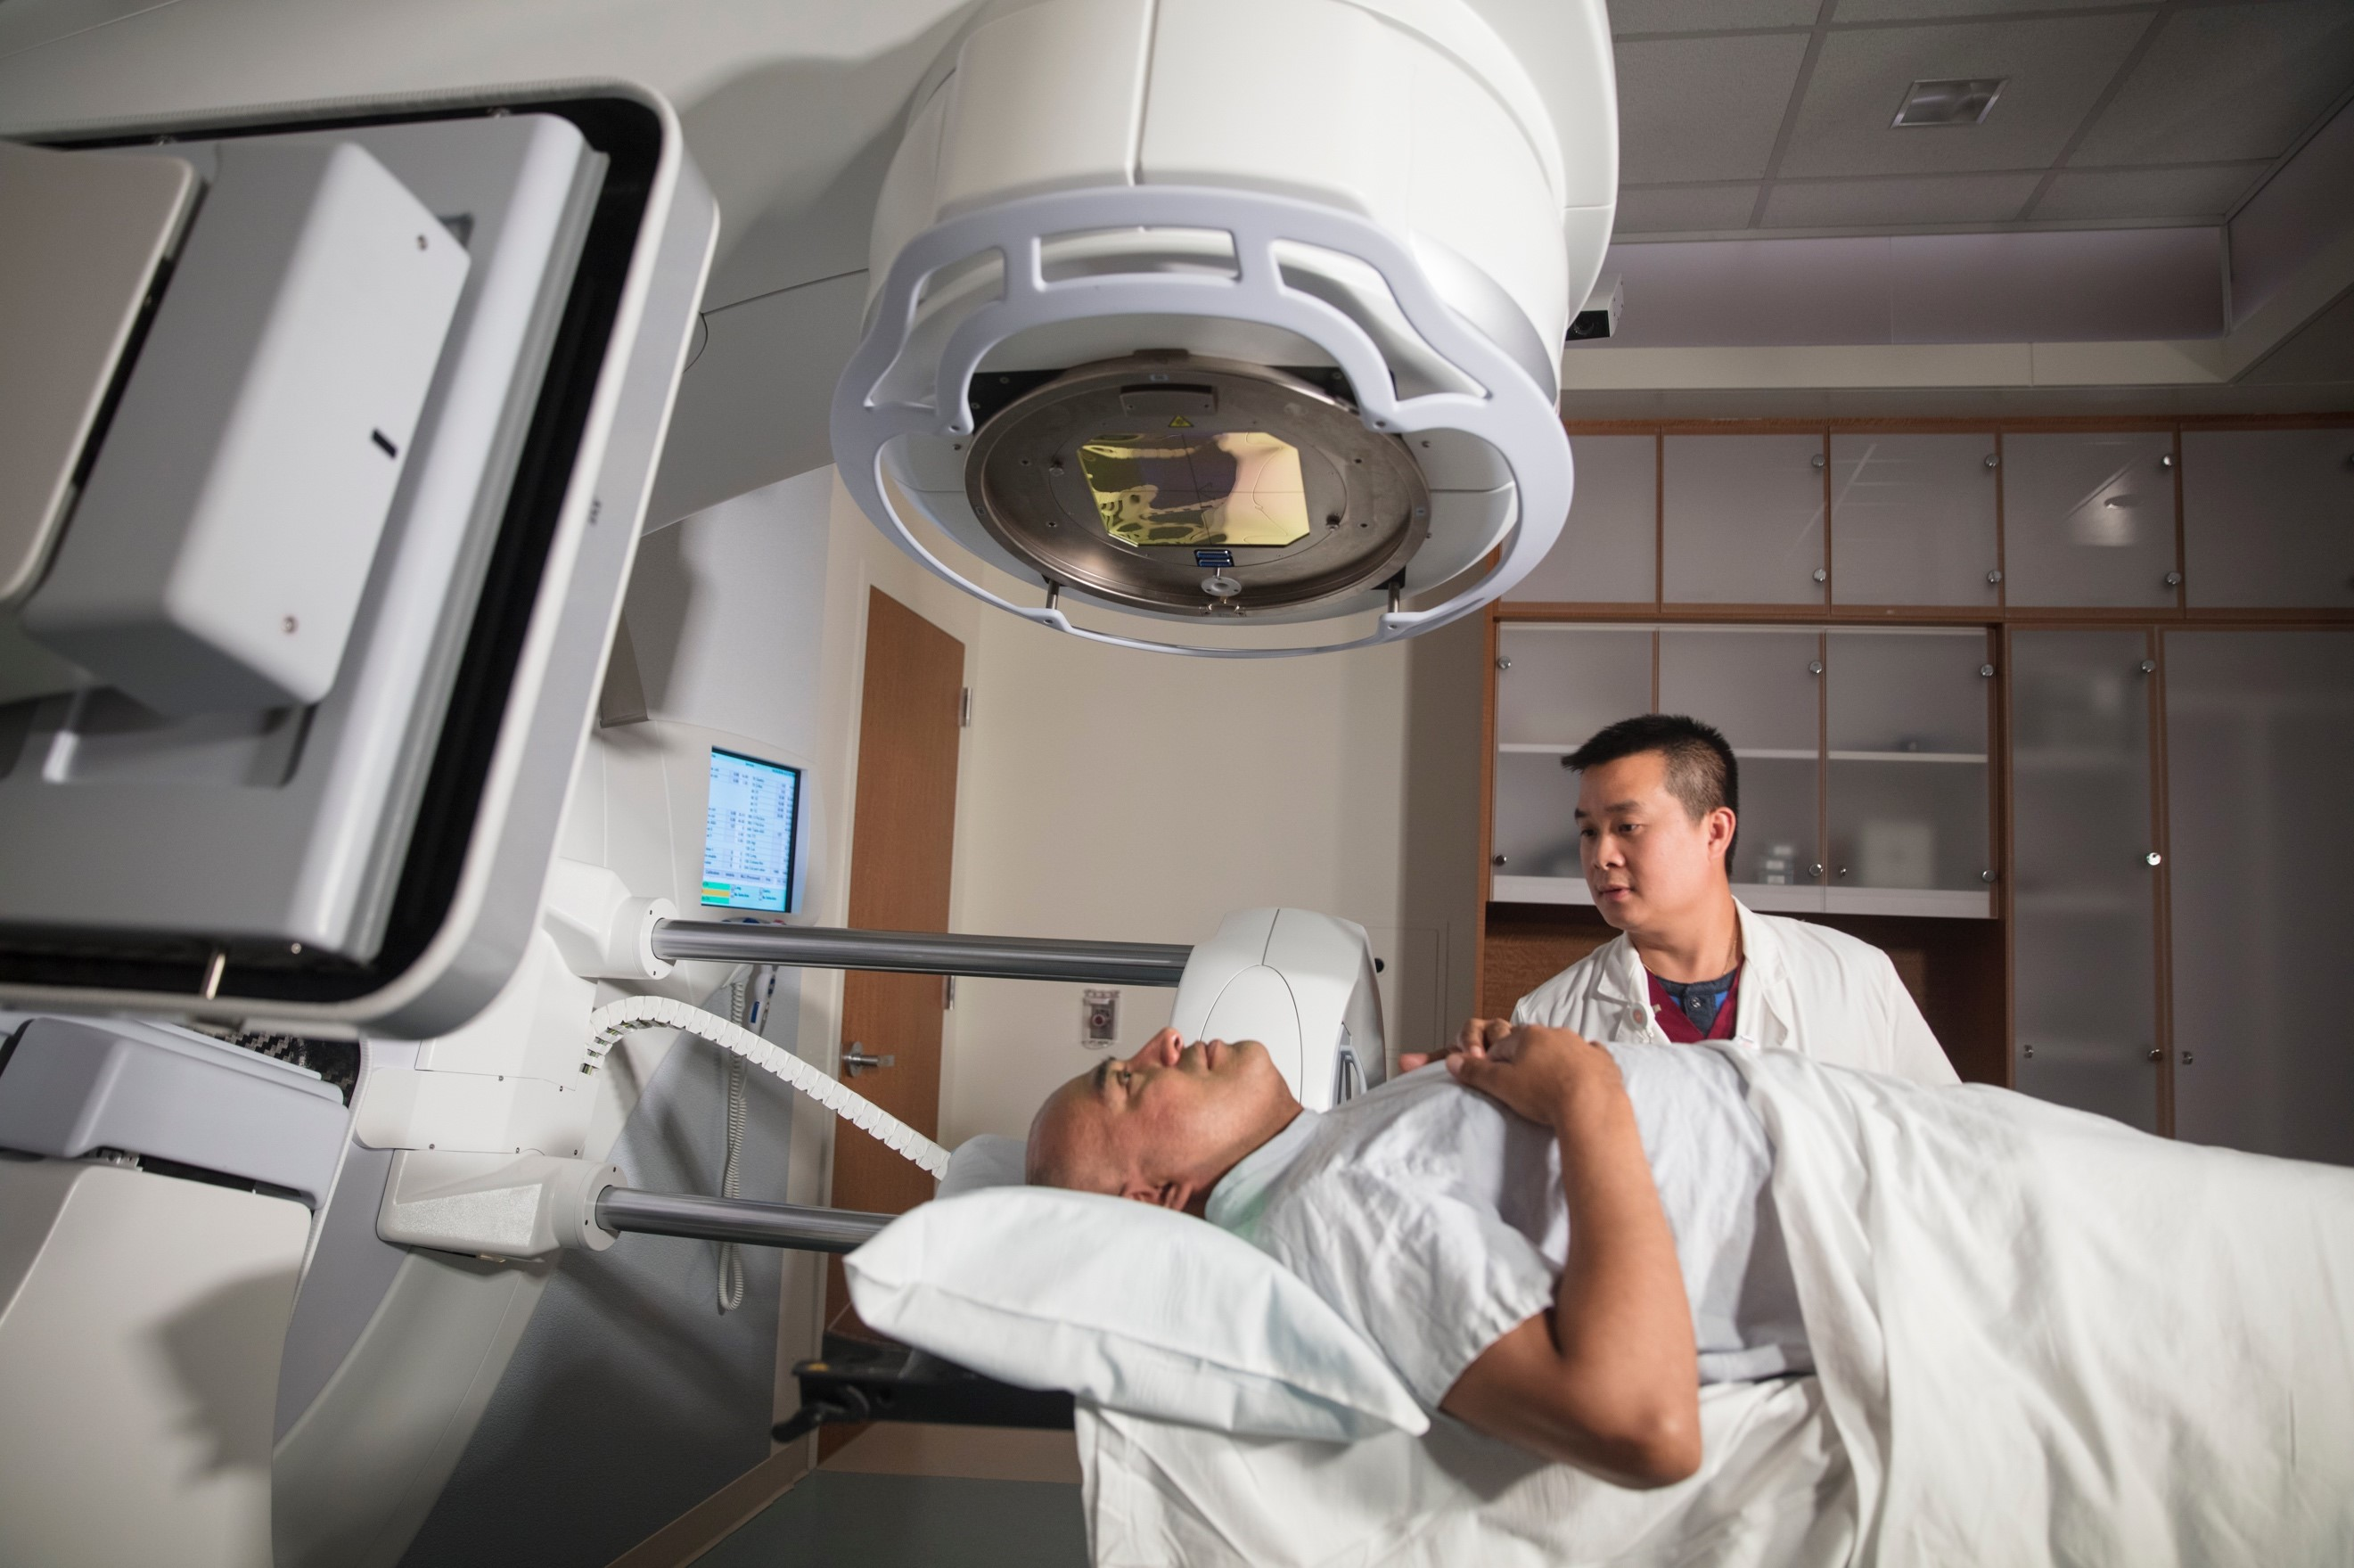 New Guideline for Prostate Cancer Supports Shortened Radiation Therapy - Imaging Technology News (press release) (blog)